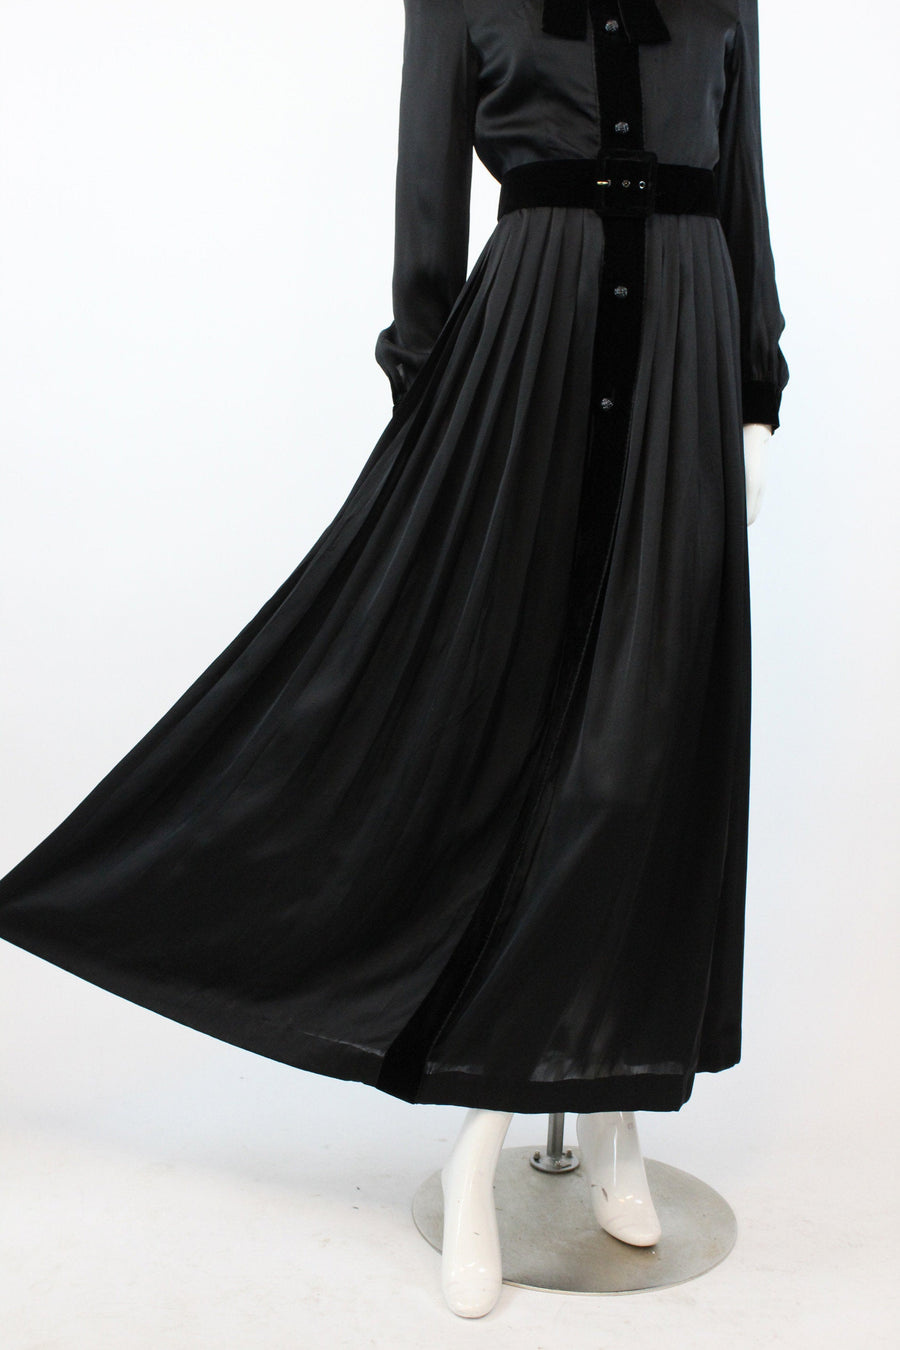 1970s GIVENCHY nouvelle boutique dress xs | silk chiffon designer gown | new in